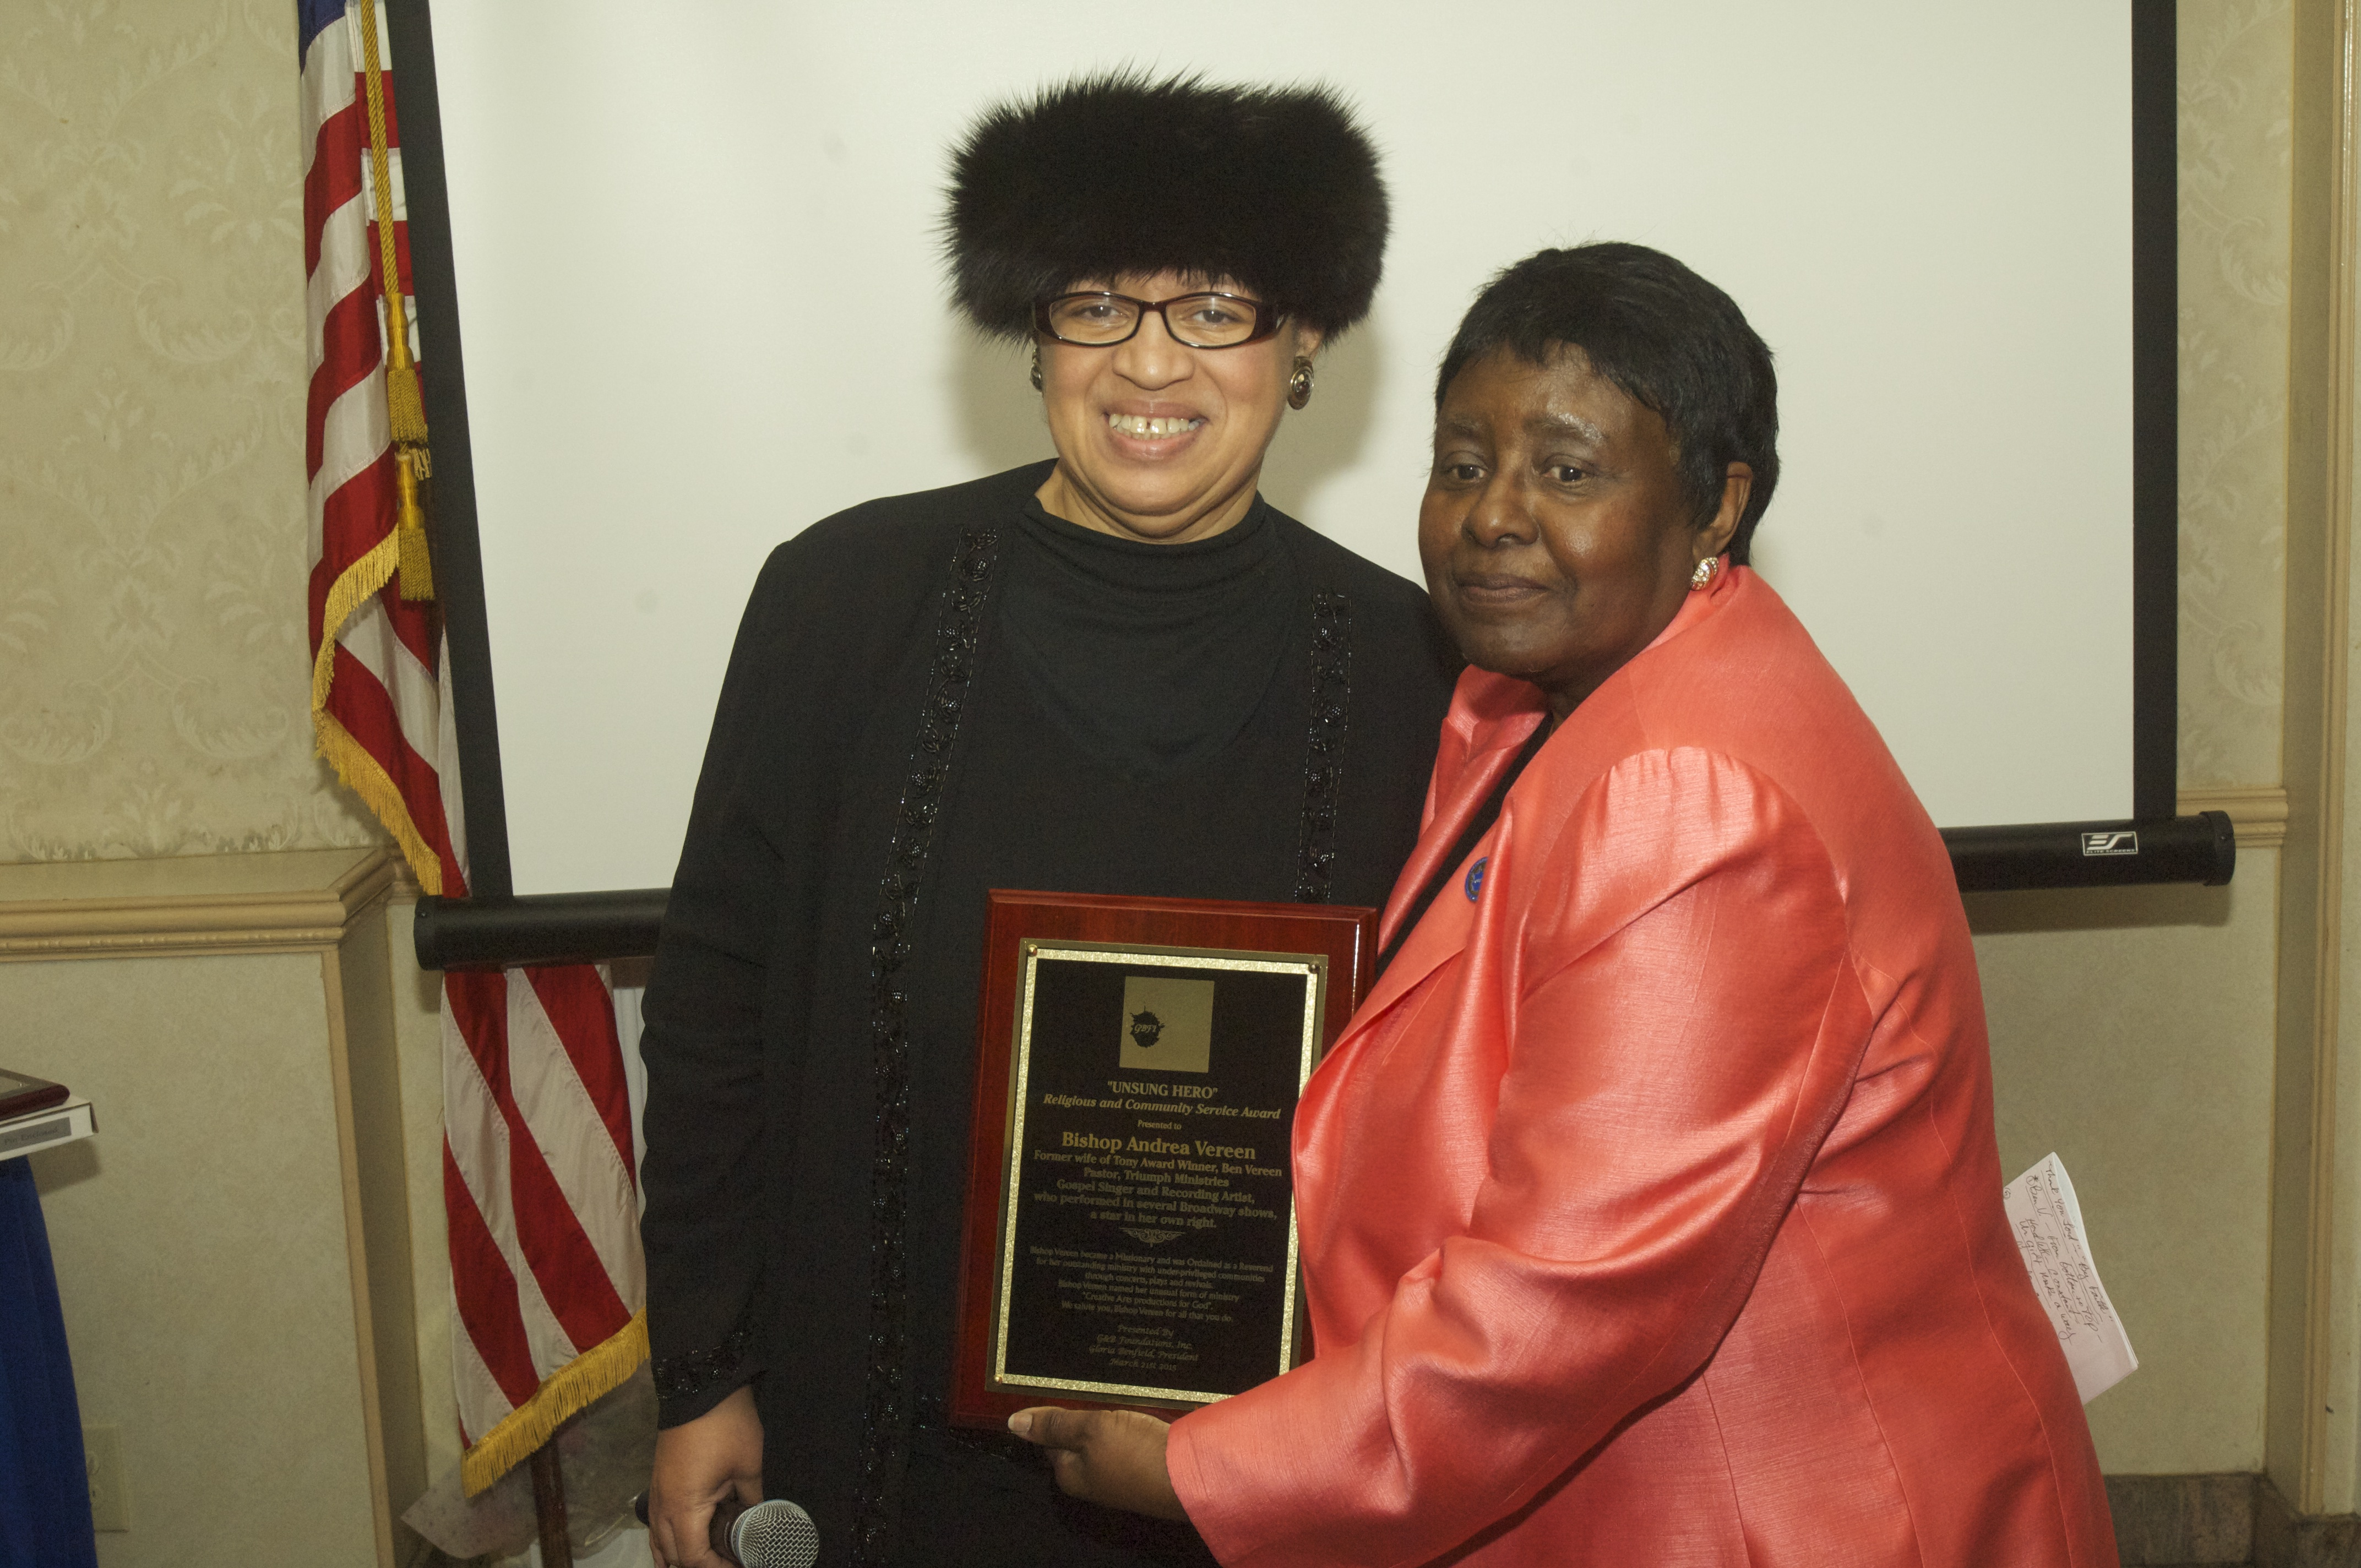 -L/R-Bishop Andrea Vereen (Religious and Community Service Honoree) with presenter Gloria Benfield (Founder, President & CEO G& B Foundations, Inc.)